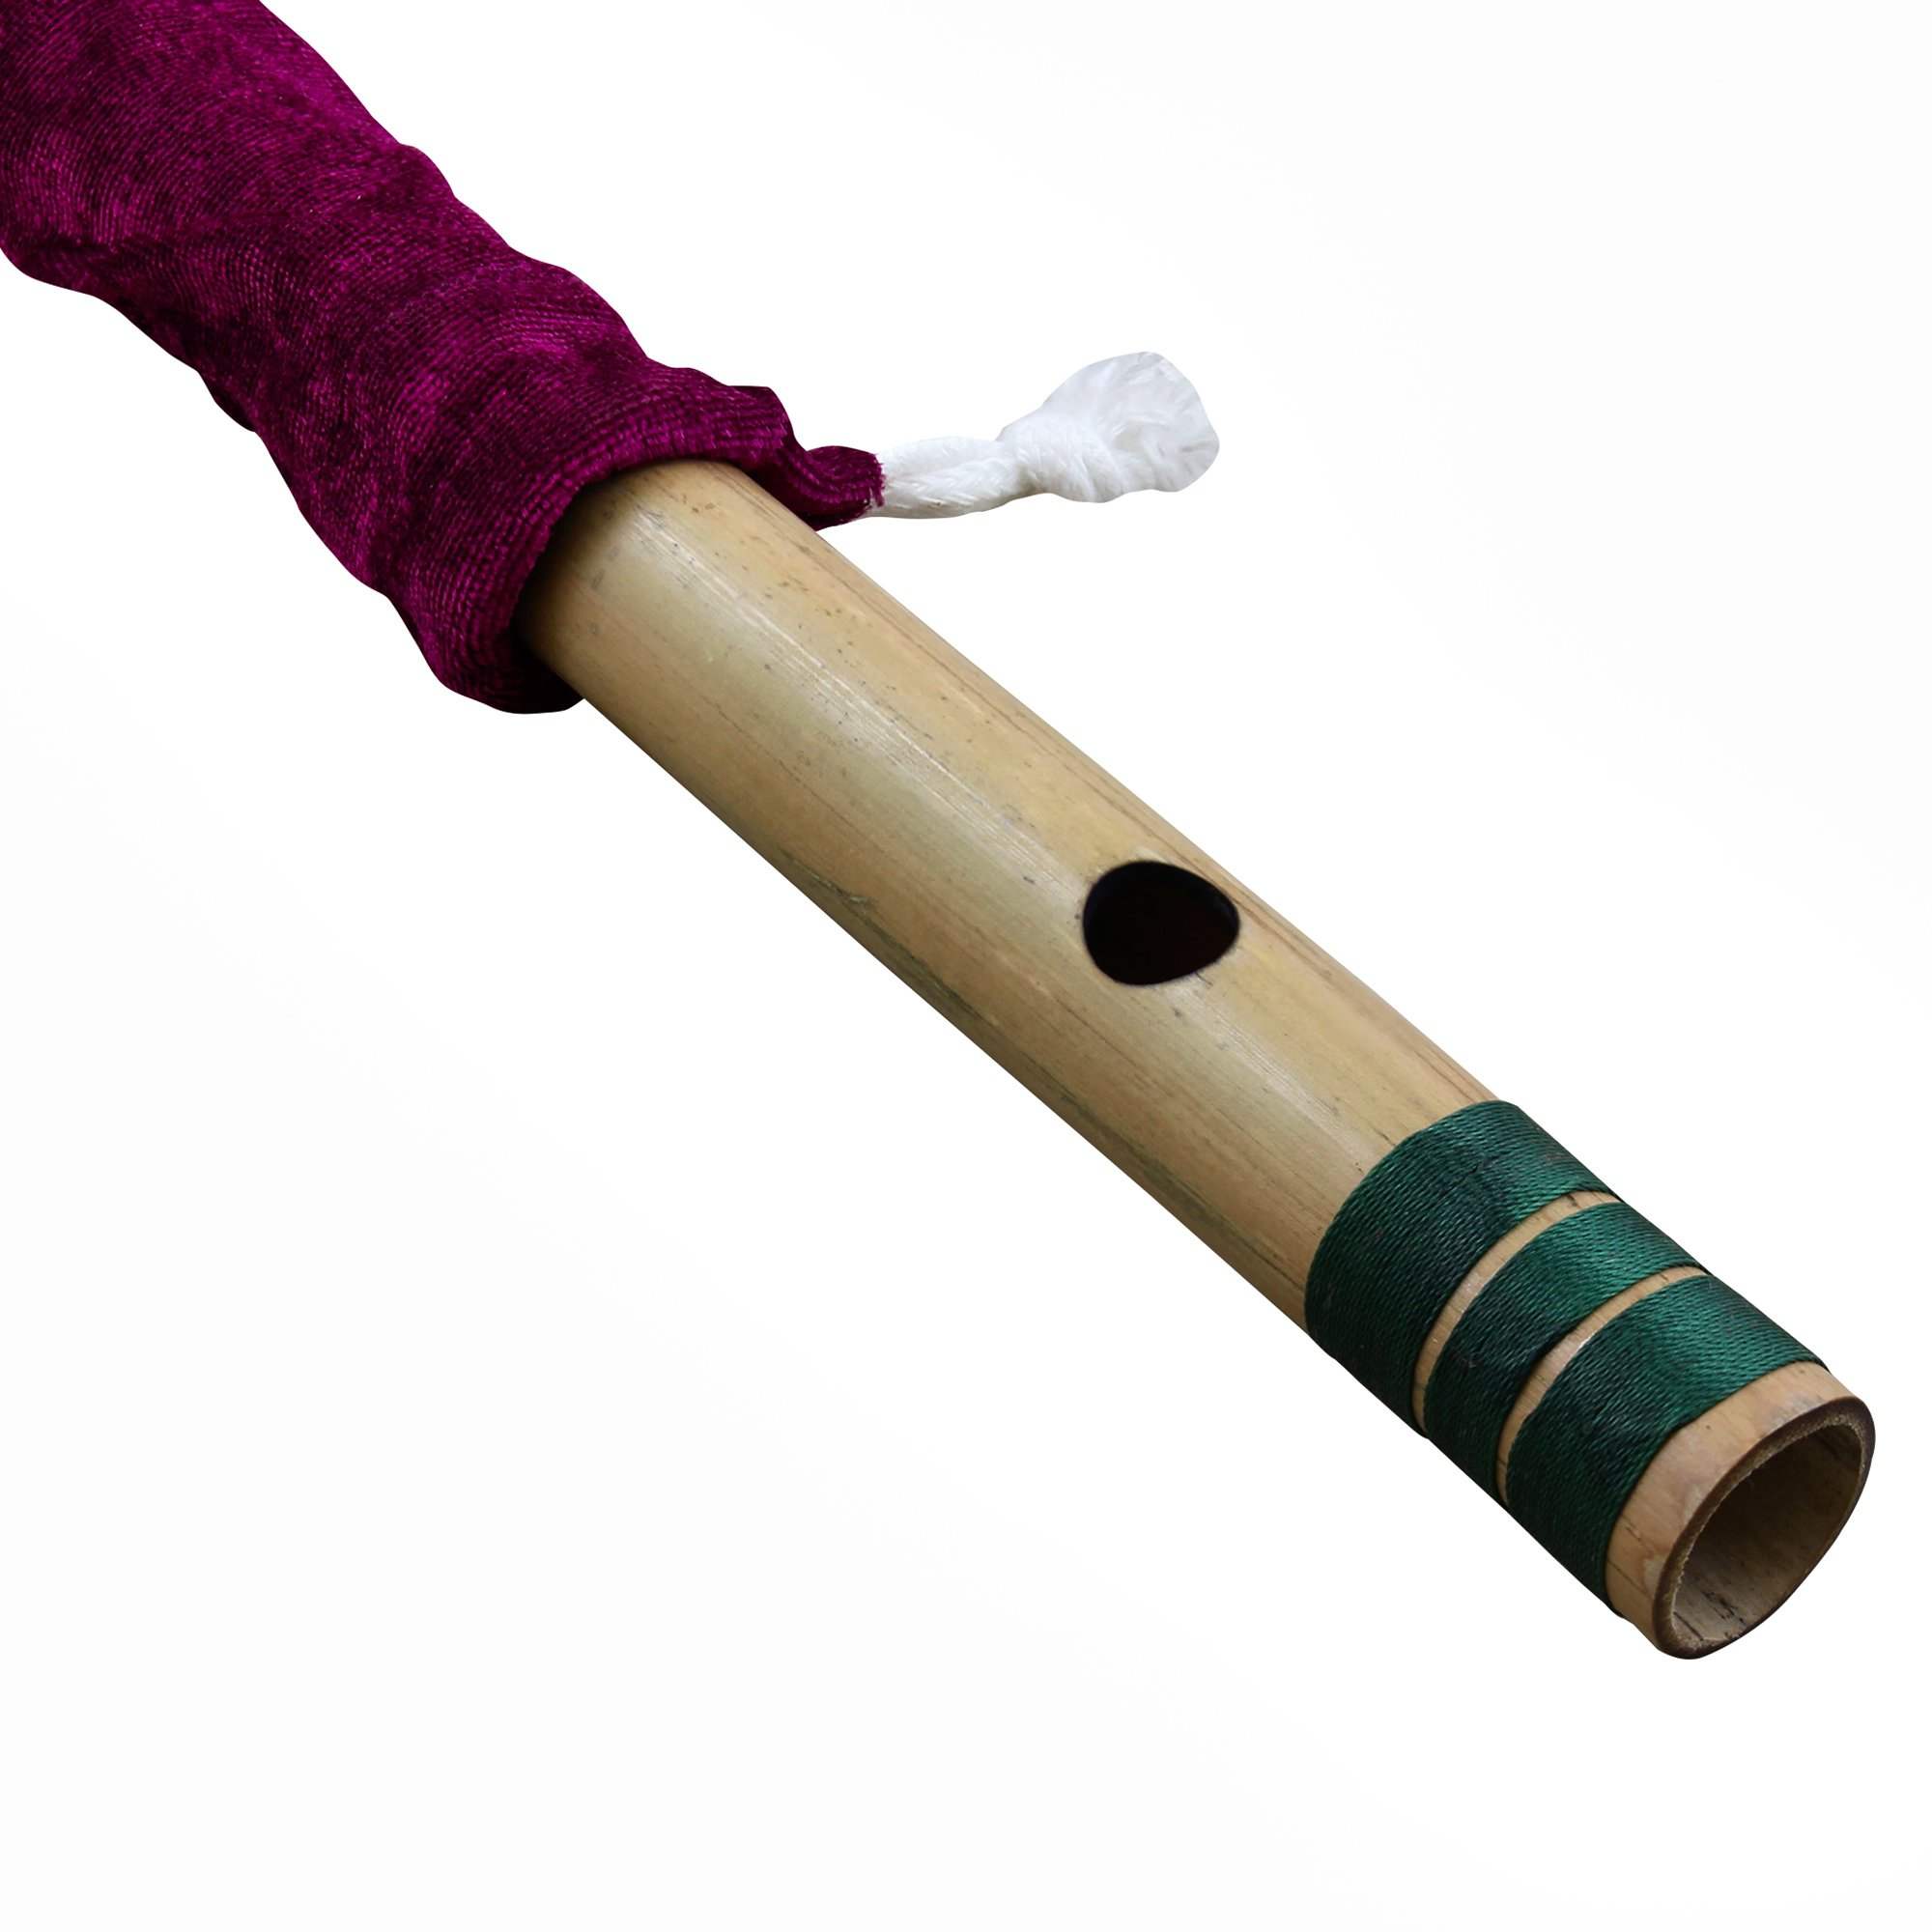 Professional Bamboo Flute Indian Flute C# Tune Wood Wind Music Instrument Length 18 Inch by RoyaltyRoute (Image #3)